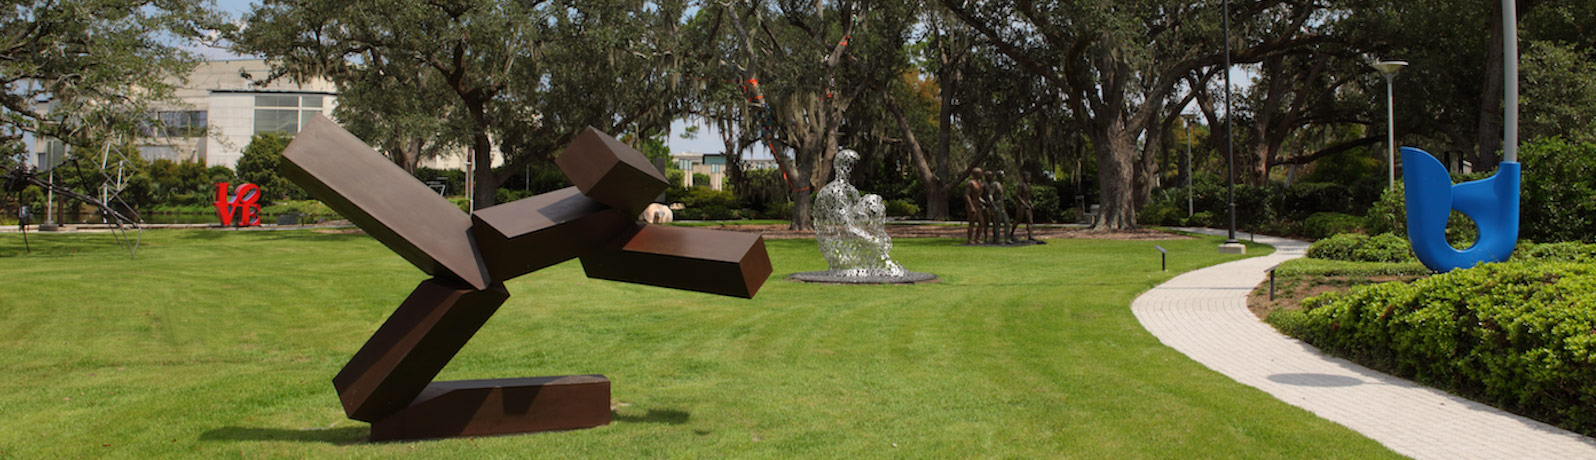 Home new orleans museum of art - Sydney and walda besthoff sculpture garden ...